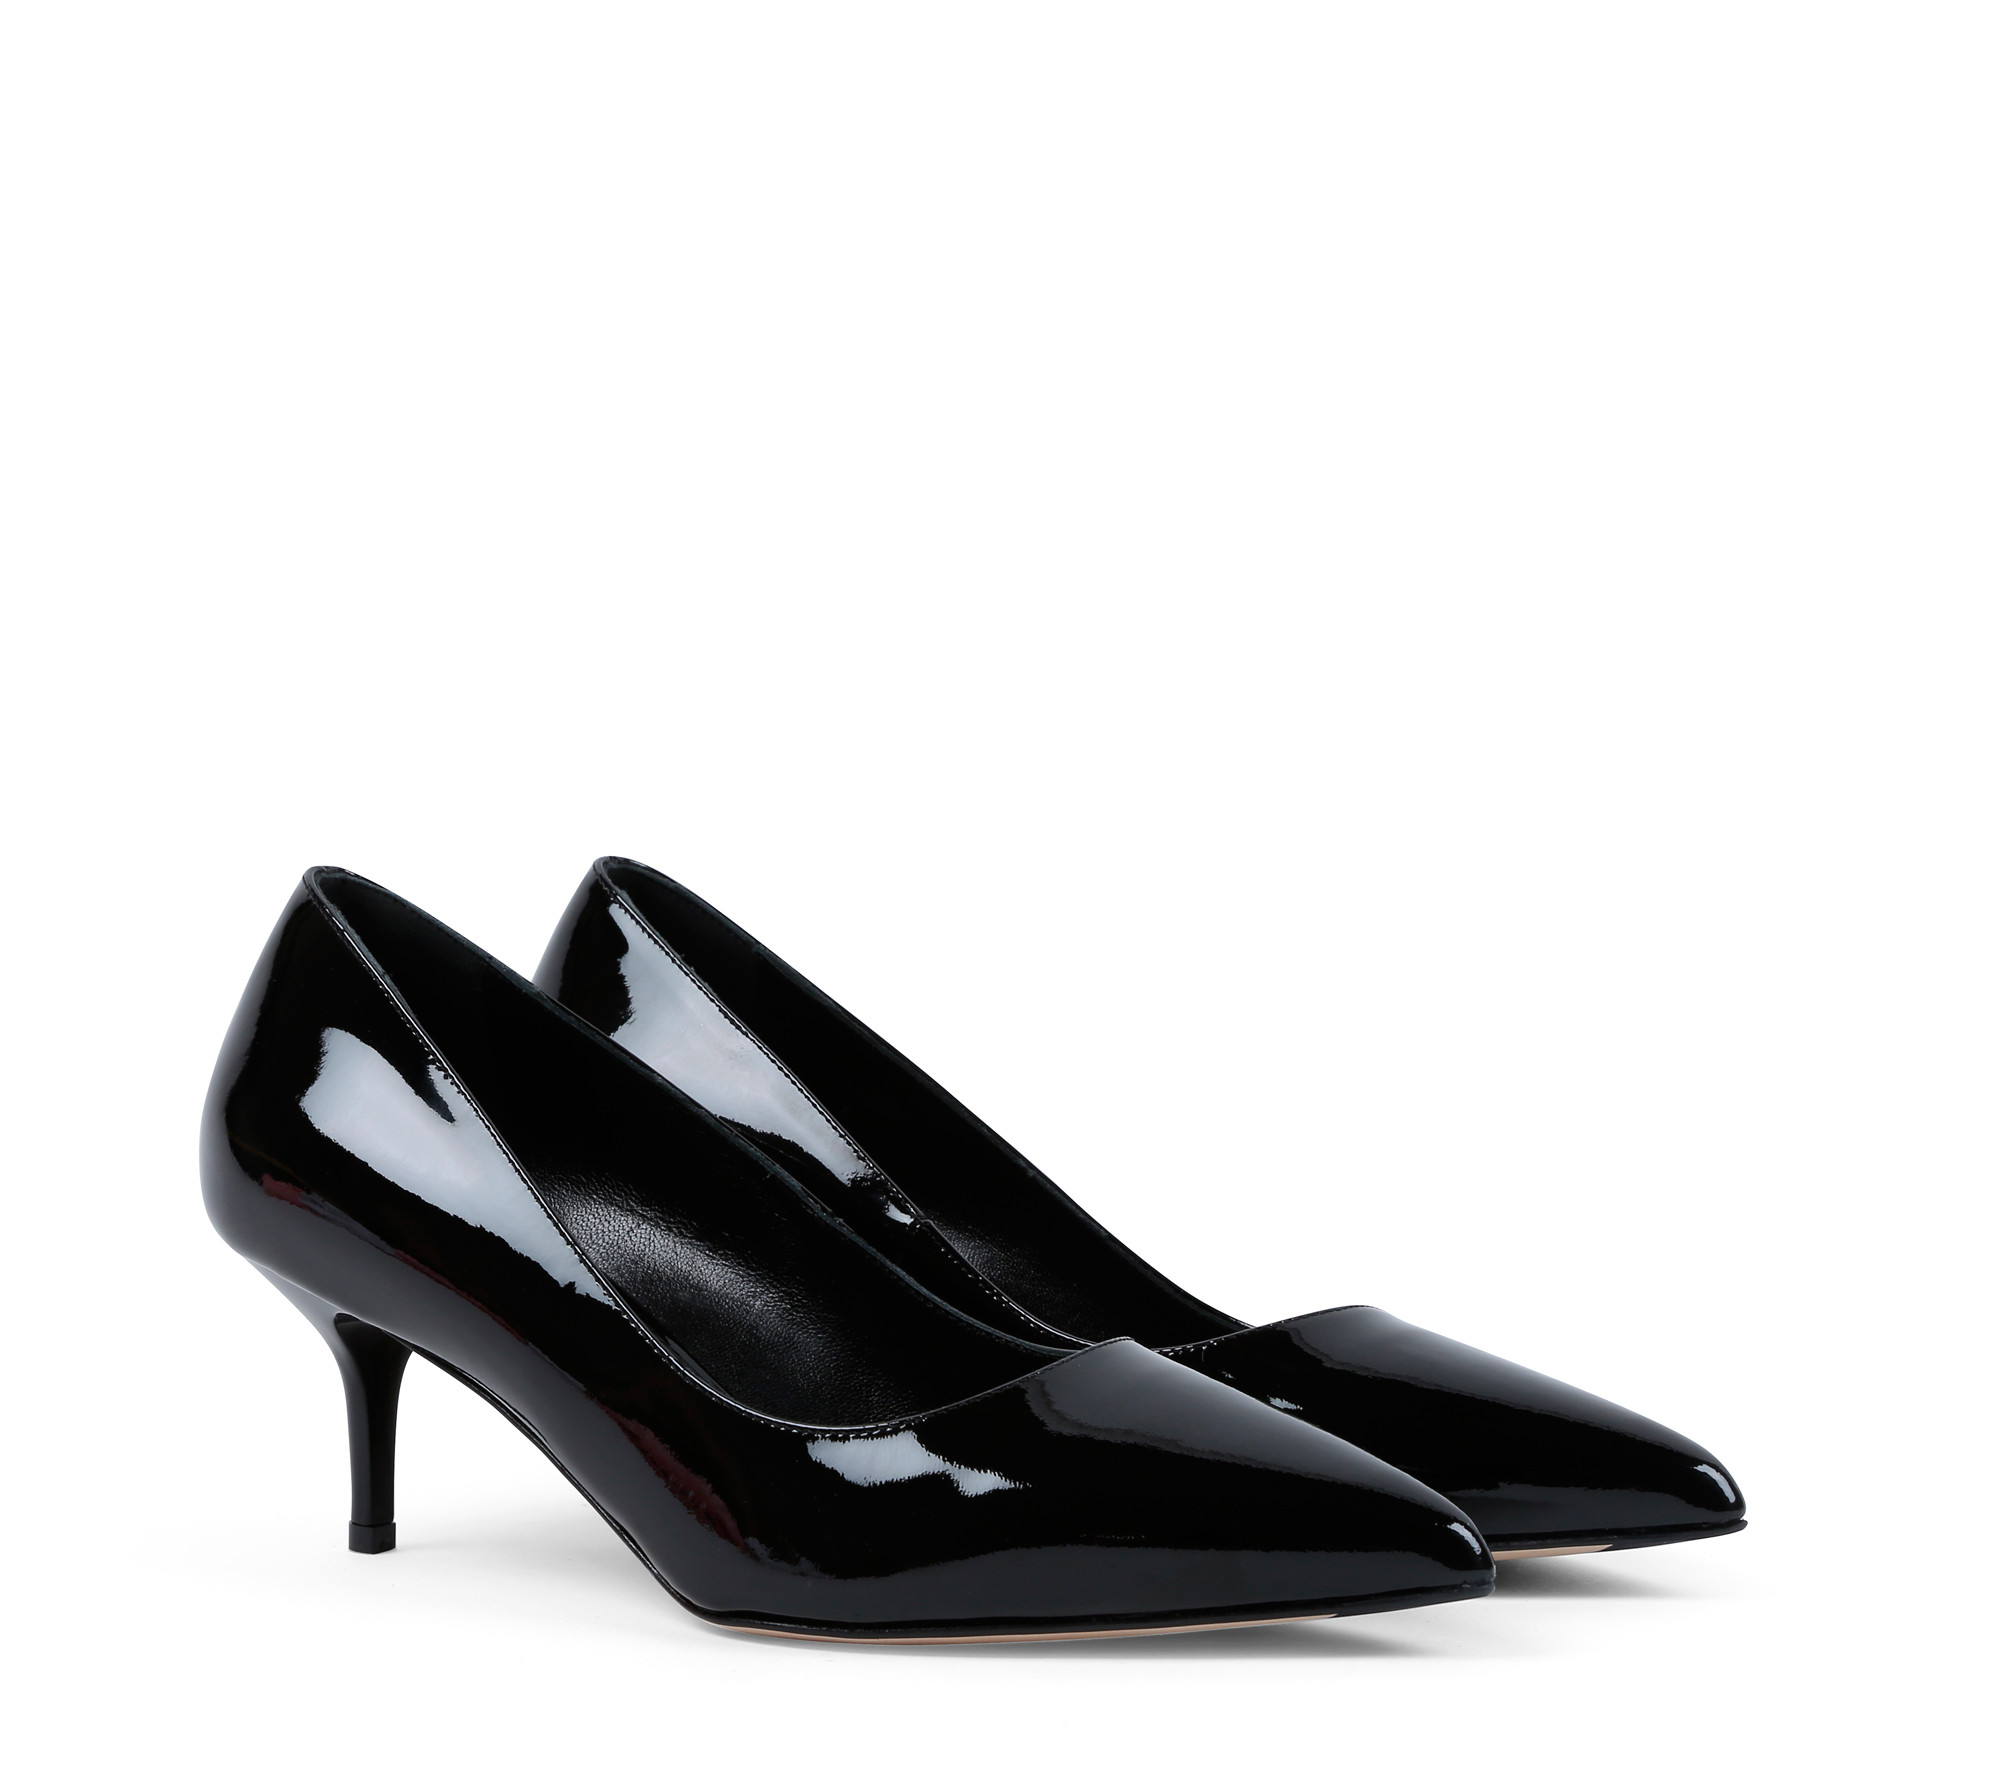 Gyzela low cut pumps